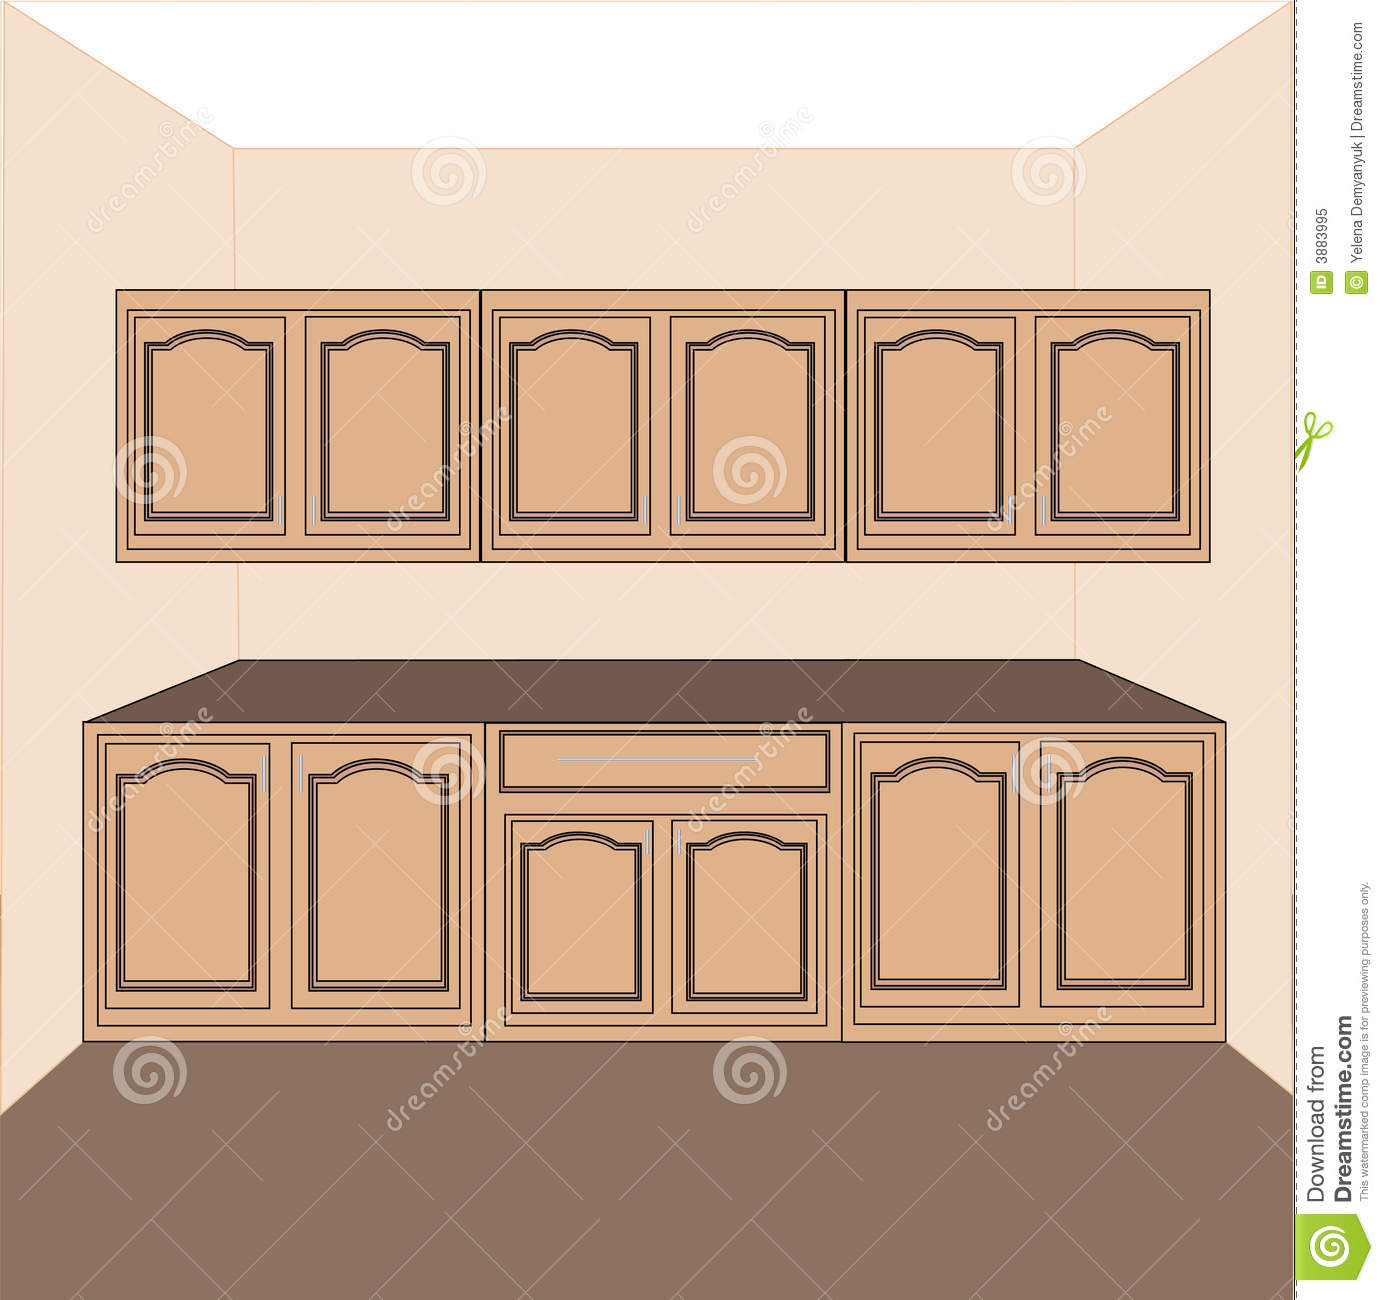 Kitchen Drawer Clip Art: Clipart Panda - Free Clipart Images